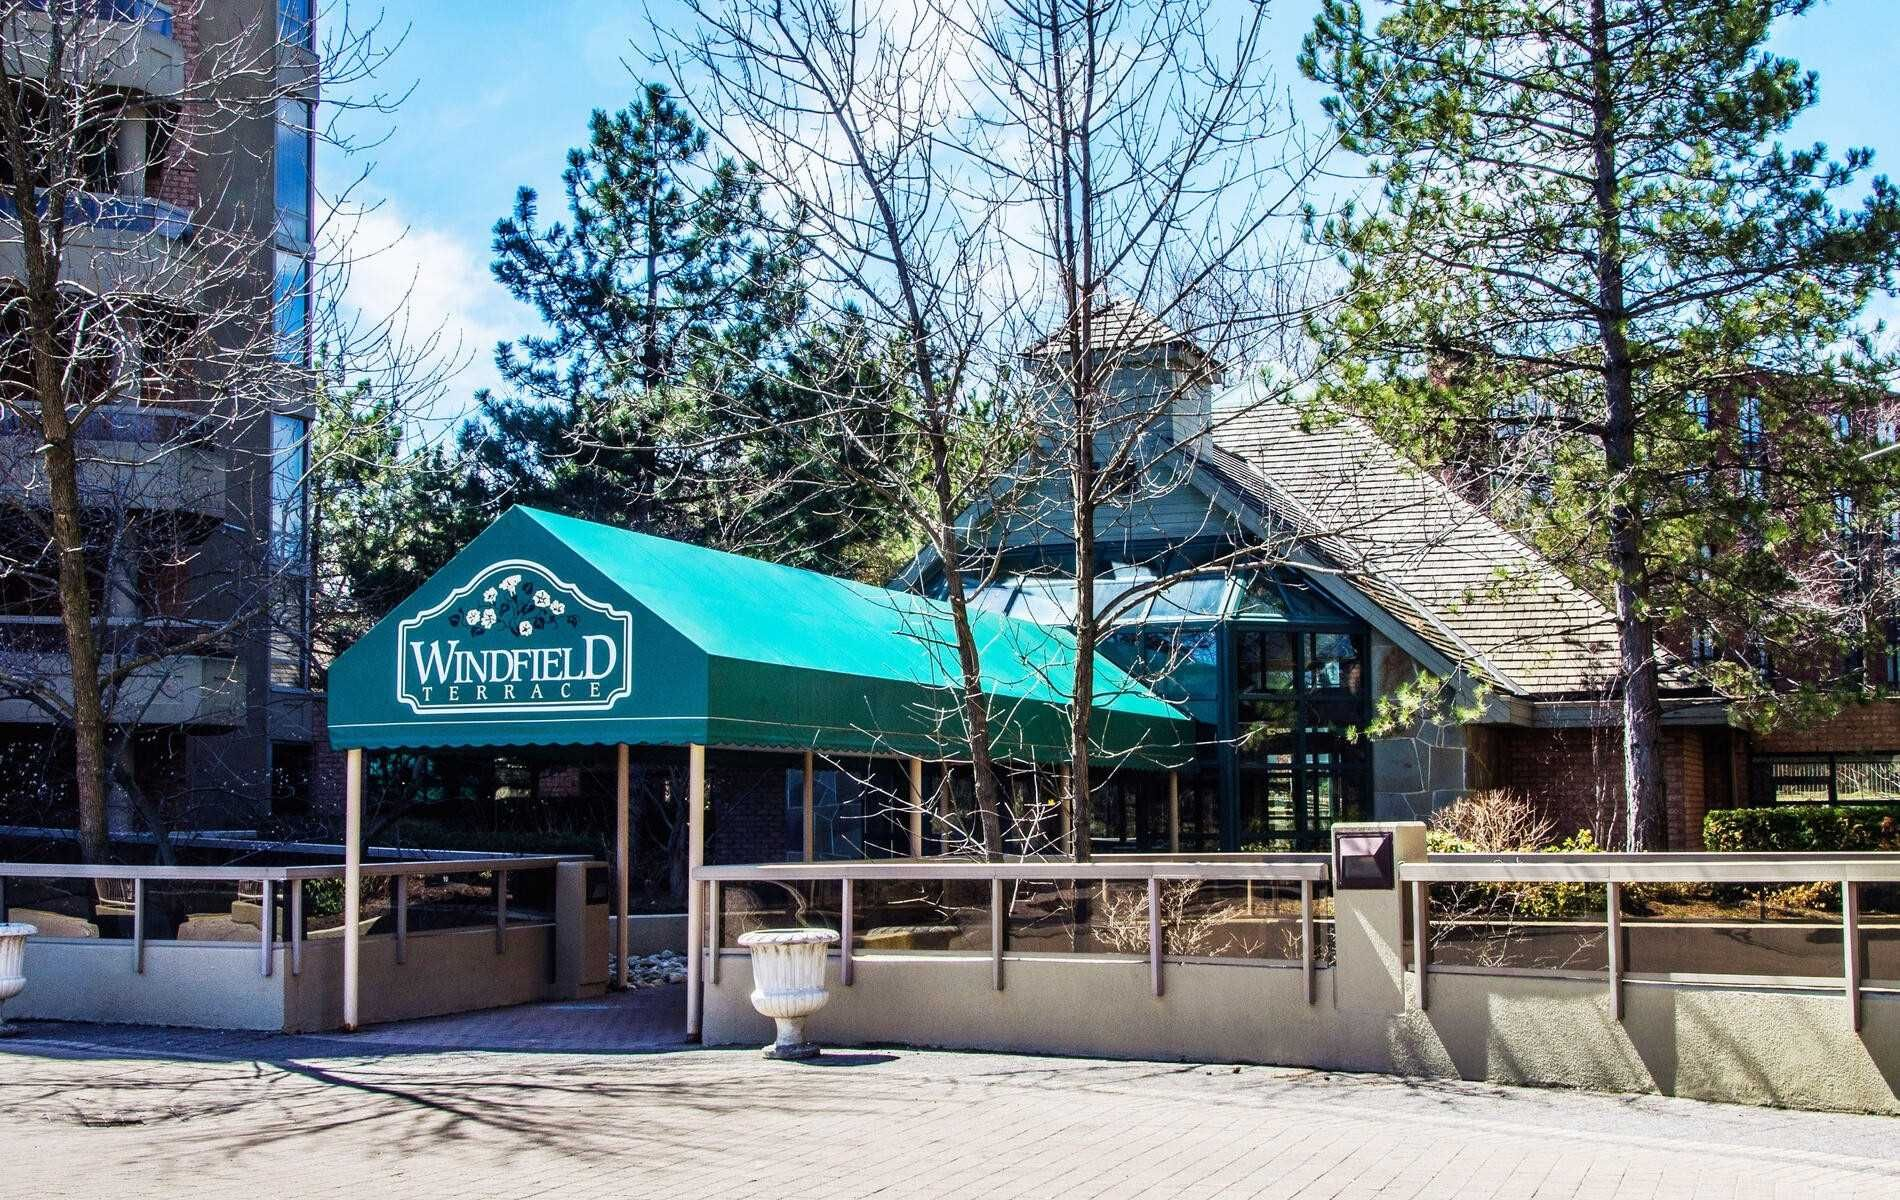 1210 Don Mills Rd, unit 626 for sale in Toronto - image #2